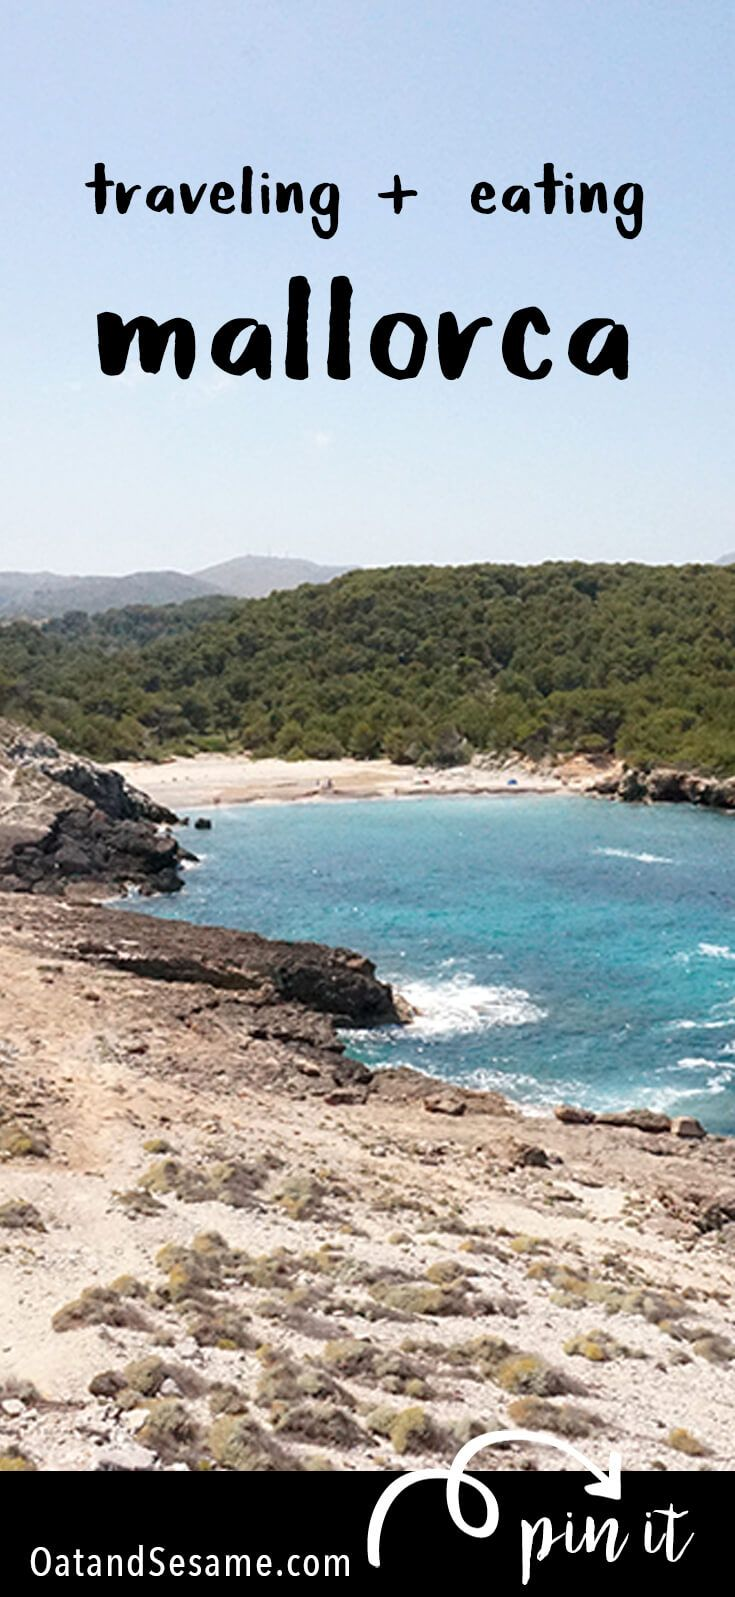 Beaches, Shopping, Art, Nature - the island of Mallorca has it all. Centralized around the main city of Palma, a quick hop in a rental car will have you hiking in dry, rocky mountains with cliffs overlooking the sea and making your way to hidden unspoiled beaches. | #TRAVEL | #SPAIN | #MALLORCA | OatandSesame.com